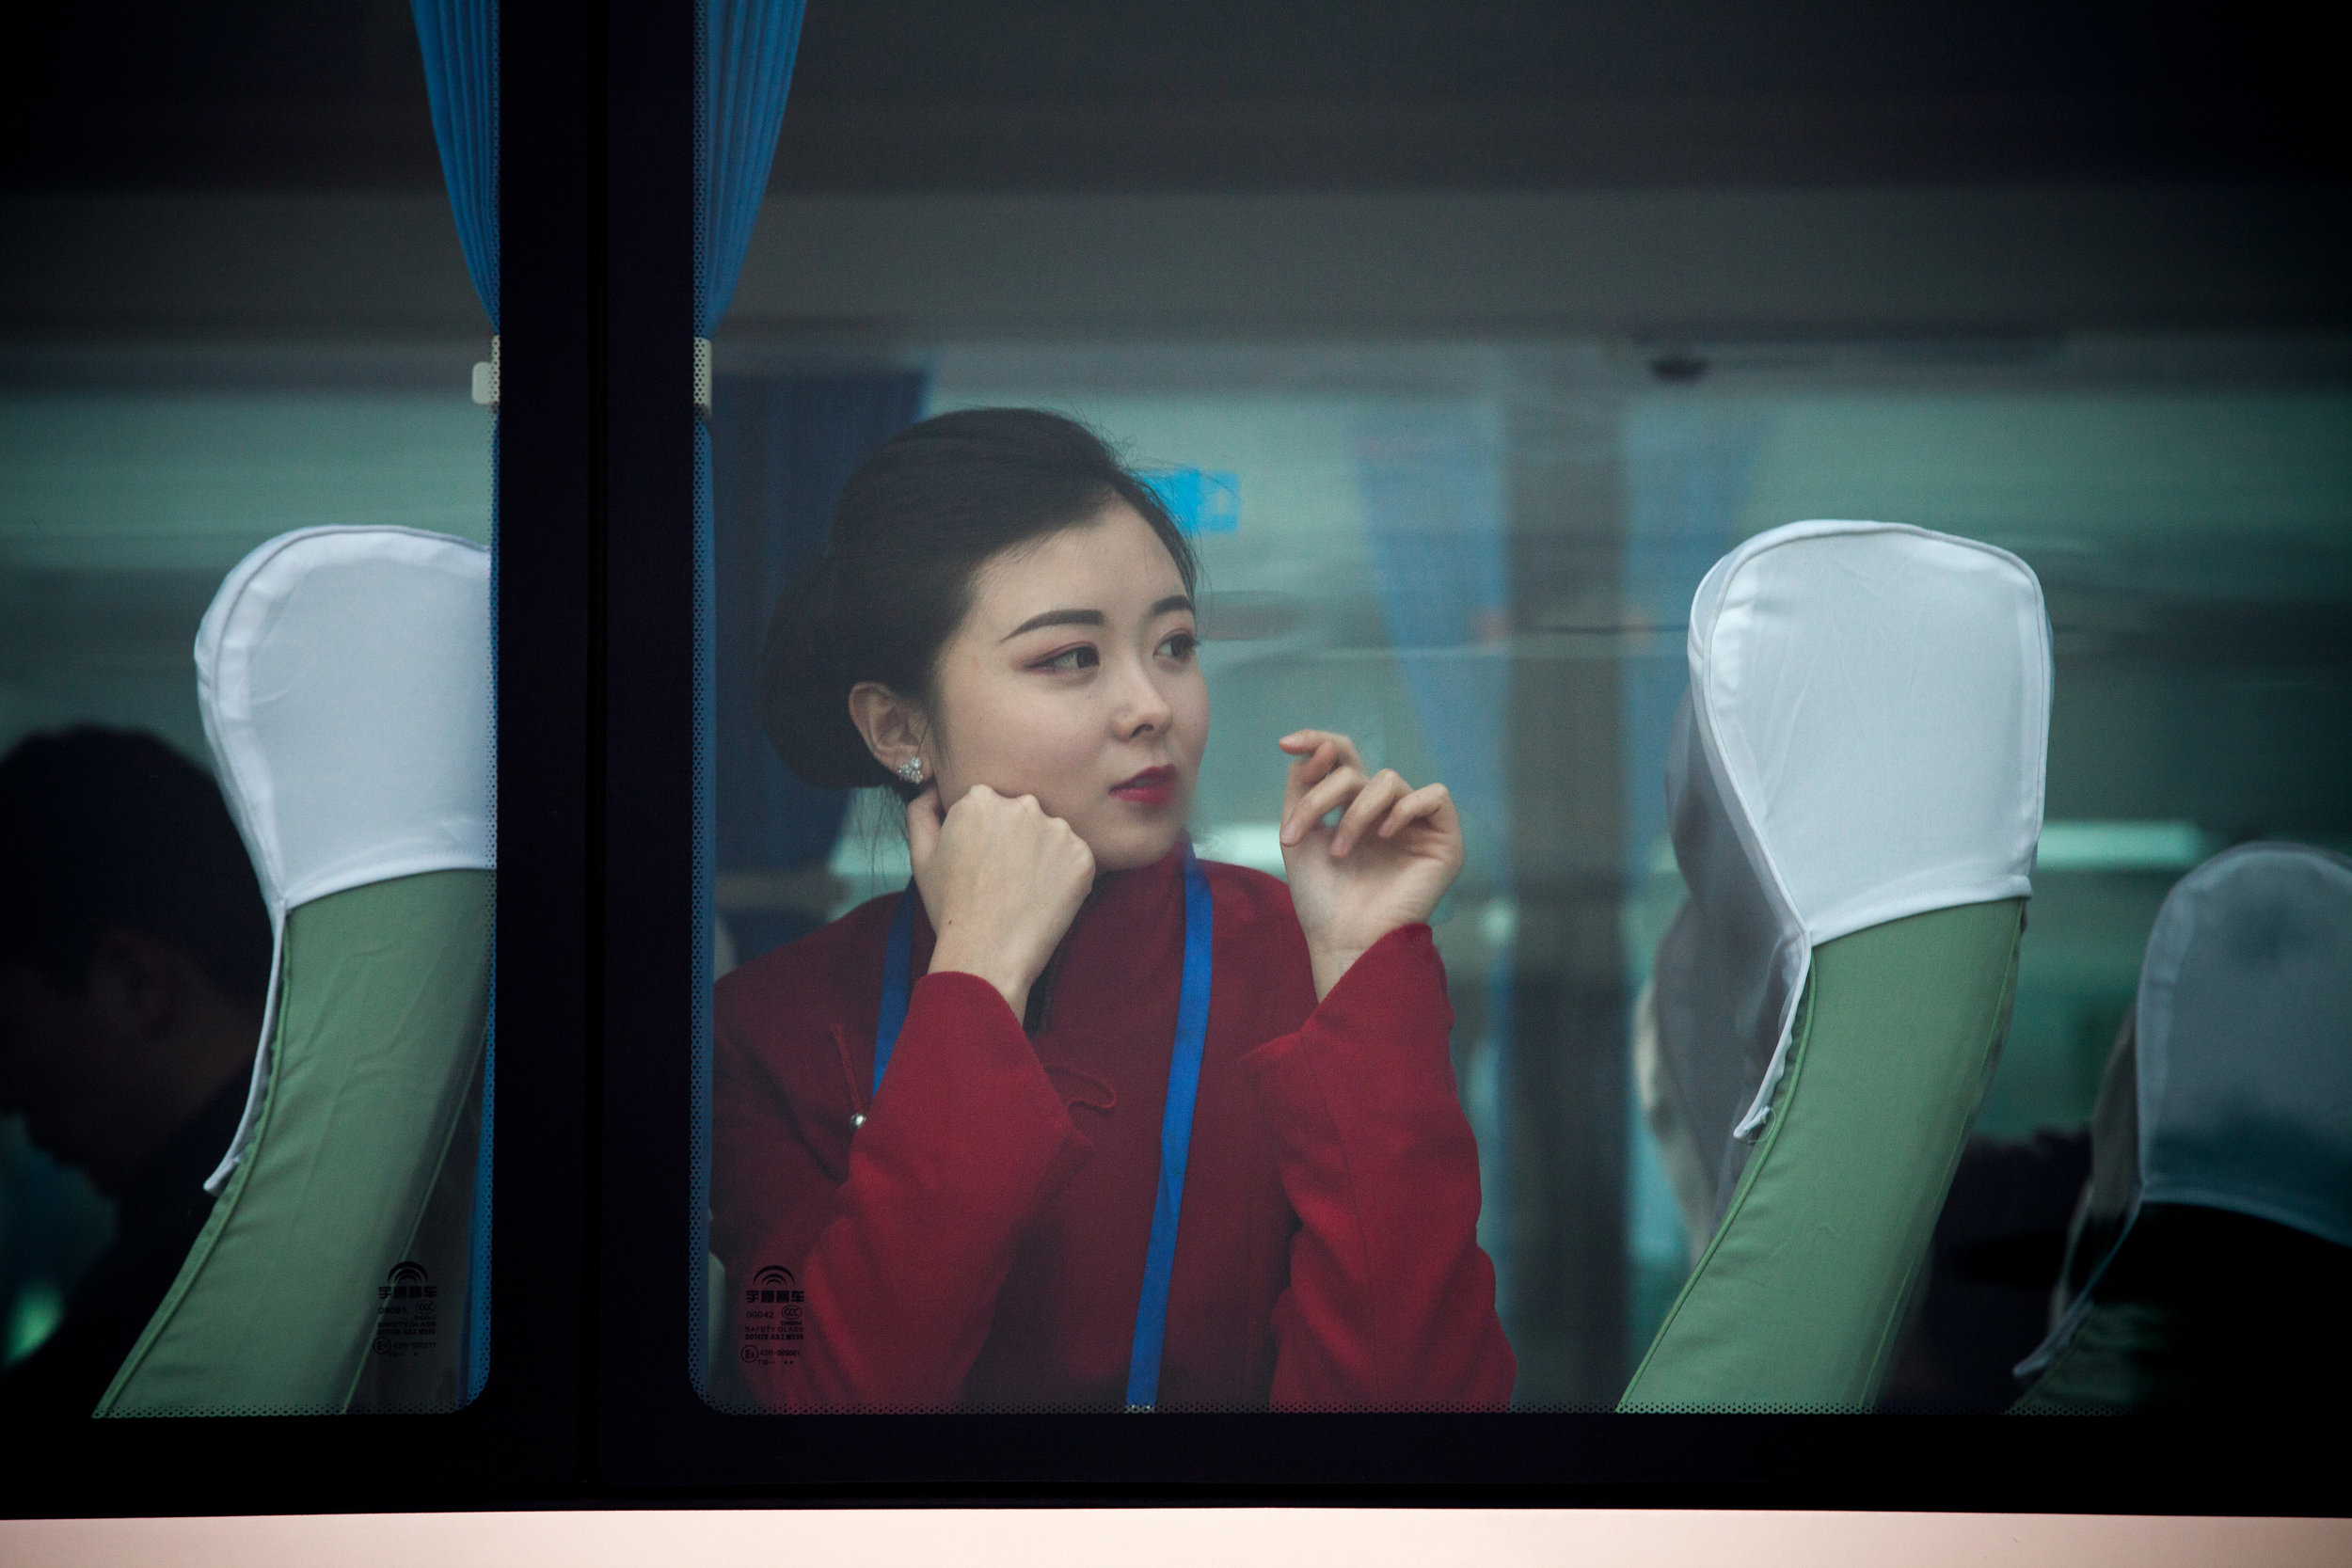 GIULIA MARCHI  www.giuliamarchi.com  |  @giuliamarchiphoto   An attendant for the 13th National People's Congress (NPC) looks out from a coach parked in front of the Great Hall of the People in Beijing, China, on Wednesday, March 7, 2018. President Xi Jinping is preparing to extend a sweeping government overhaul that would give the Communist Party greater control over everything from financial services to manufacturing to entertainment.  From Bloomberg News:    China's Biggest Political Gathering Could Let Xi Rule for a Lifetime   .